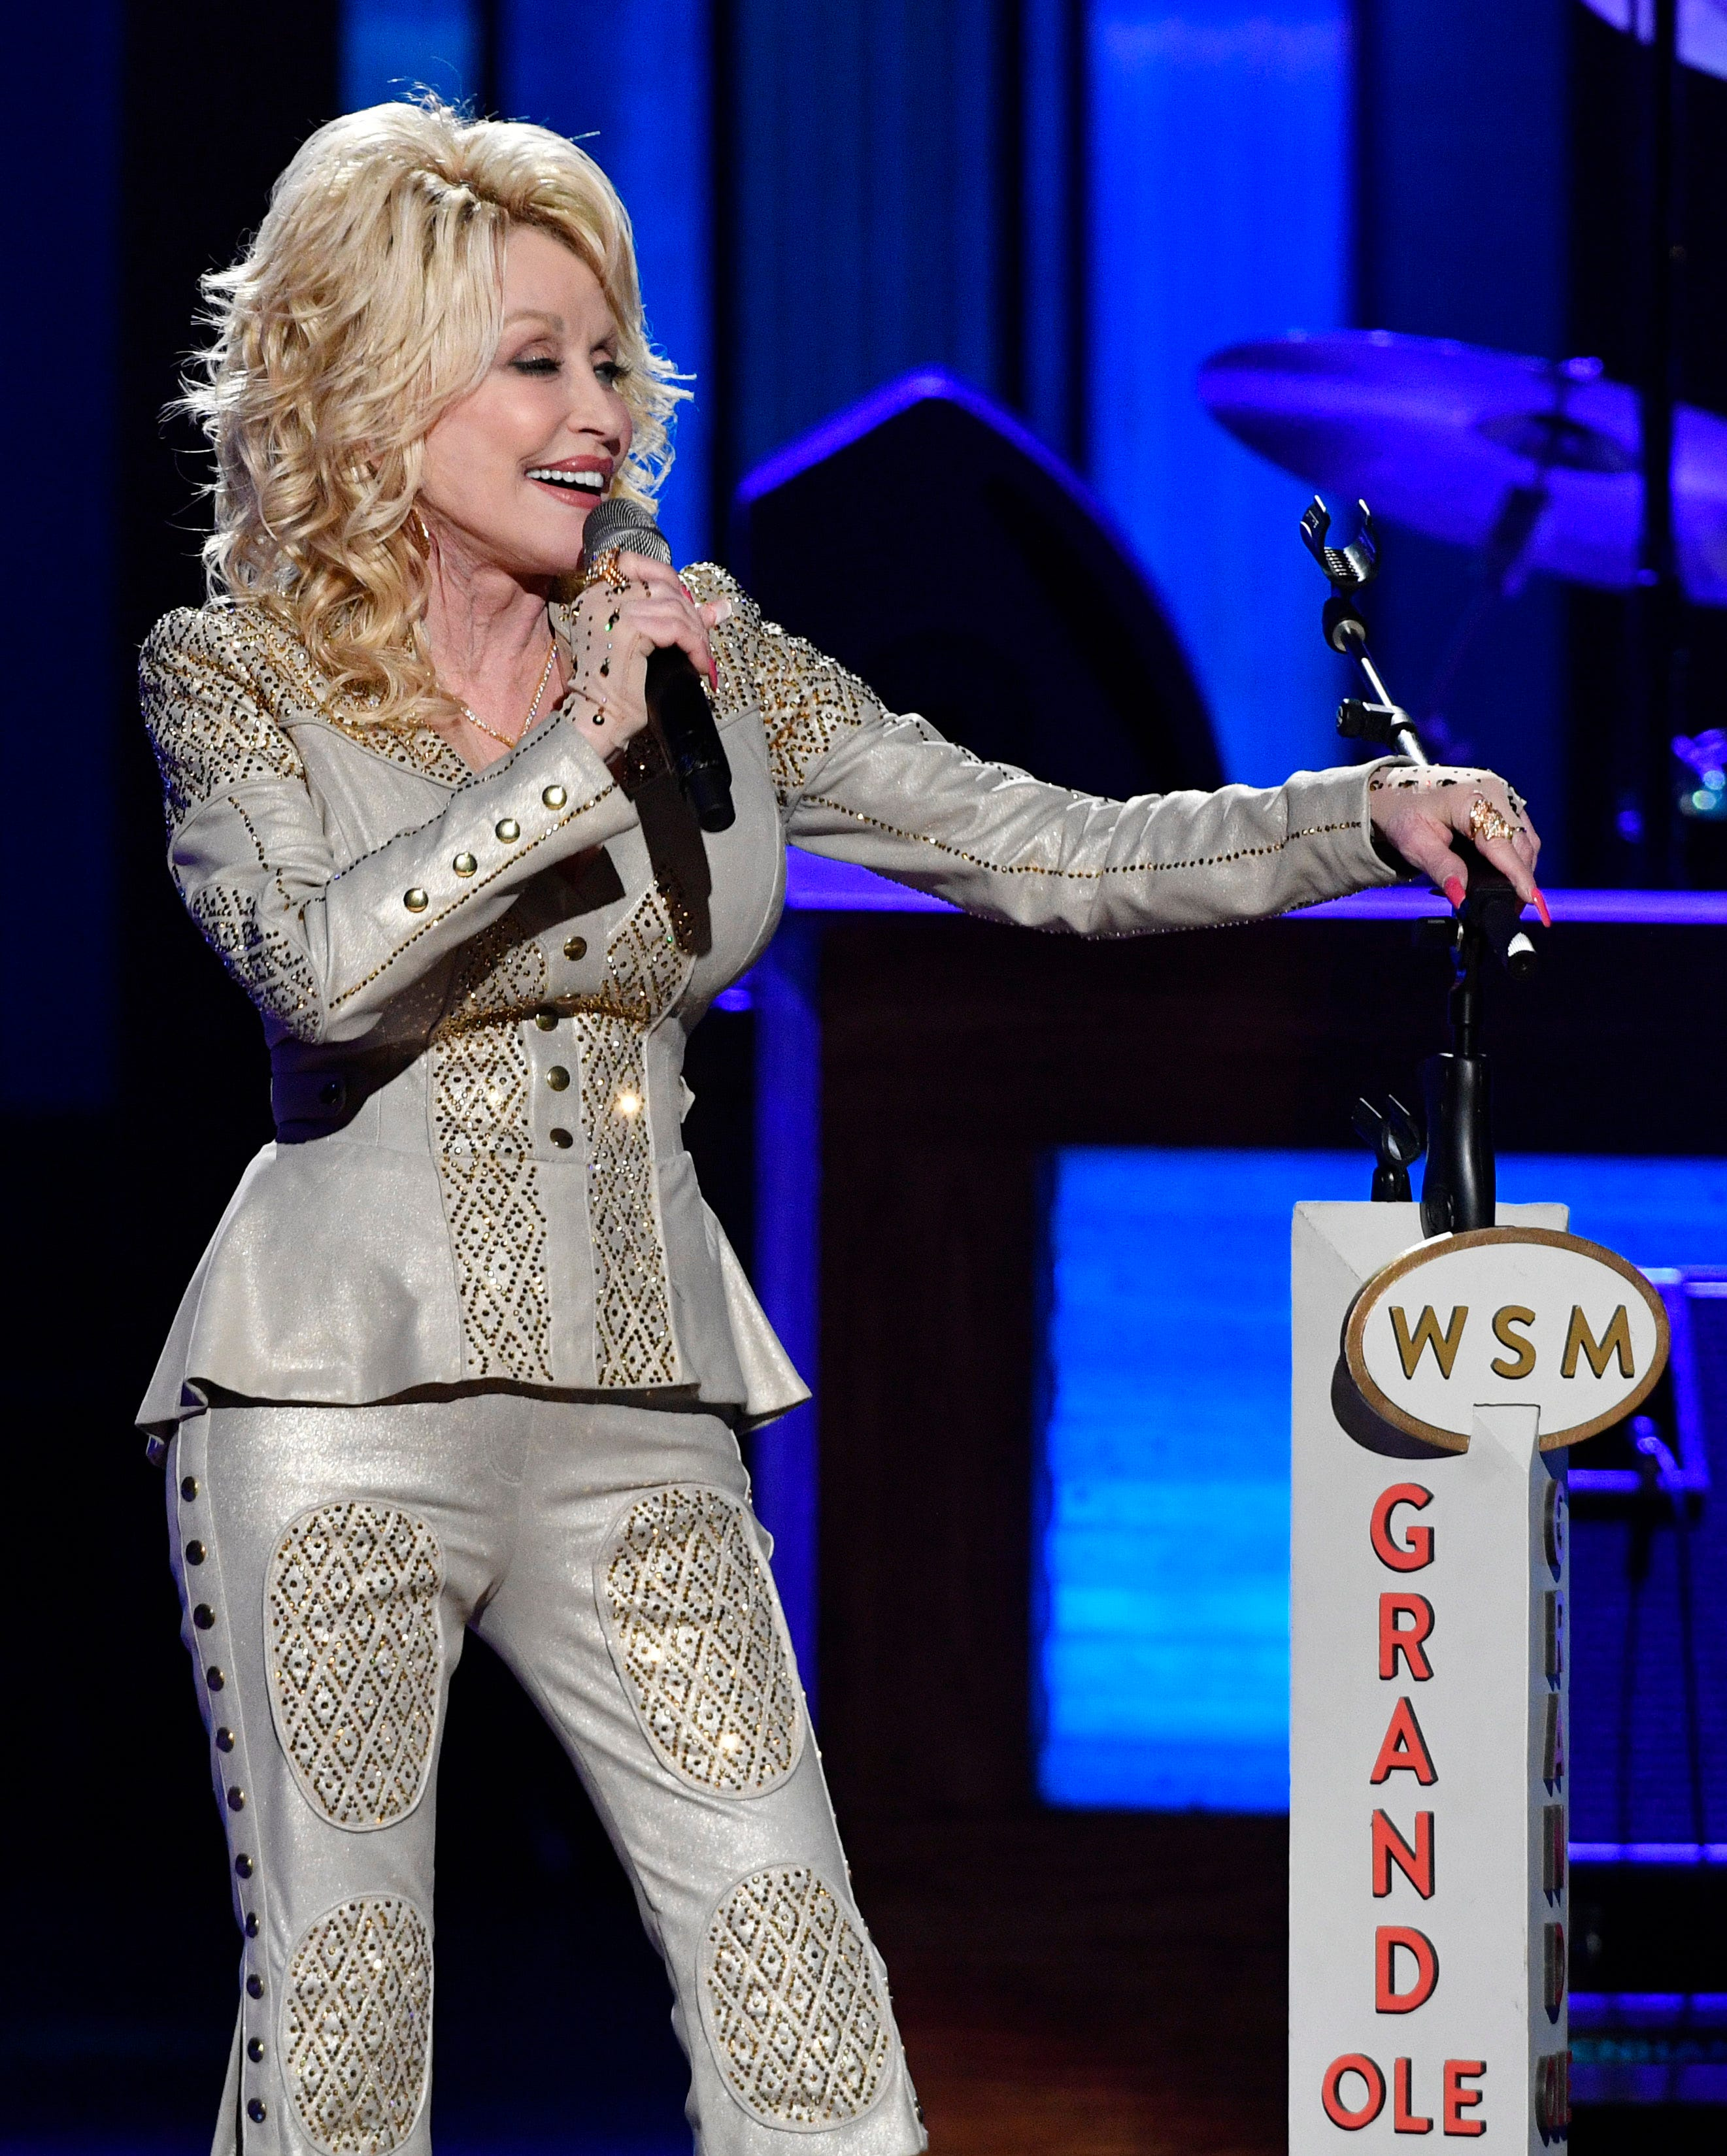 Dolly Parton performs at her 50th Opry Member Anniversary at the Grand Ole OprySaturday, Oct. 12, 2019, in Nashville, Tenn.